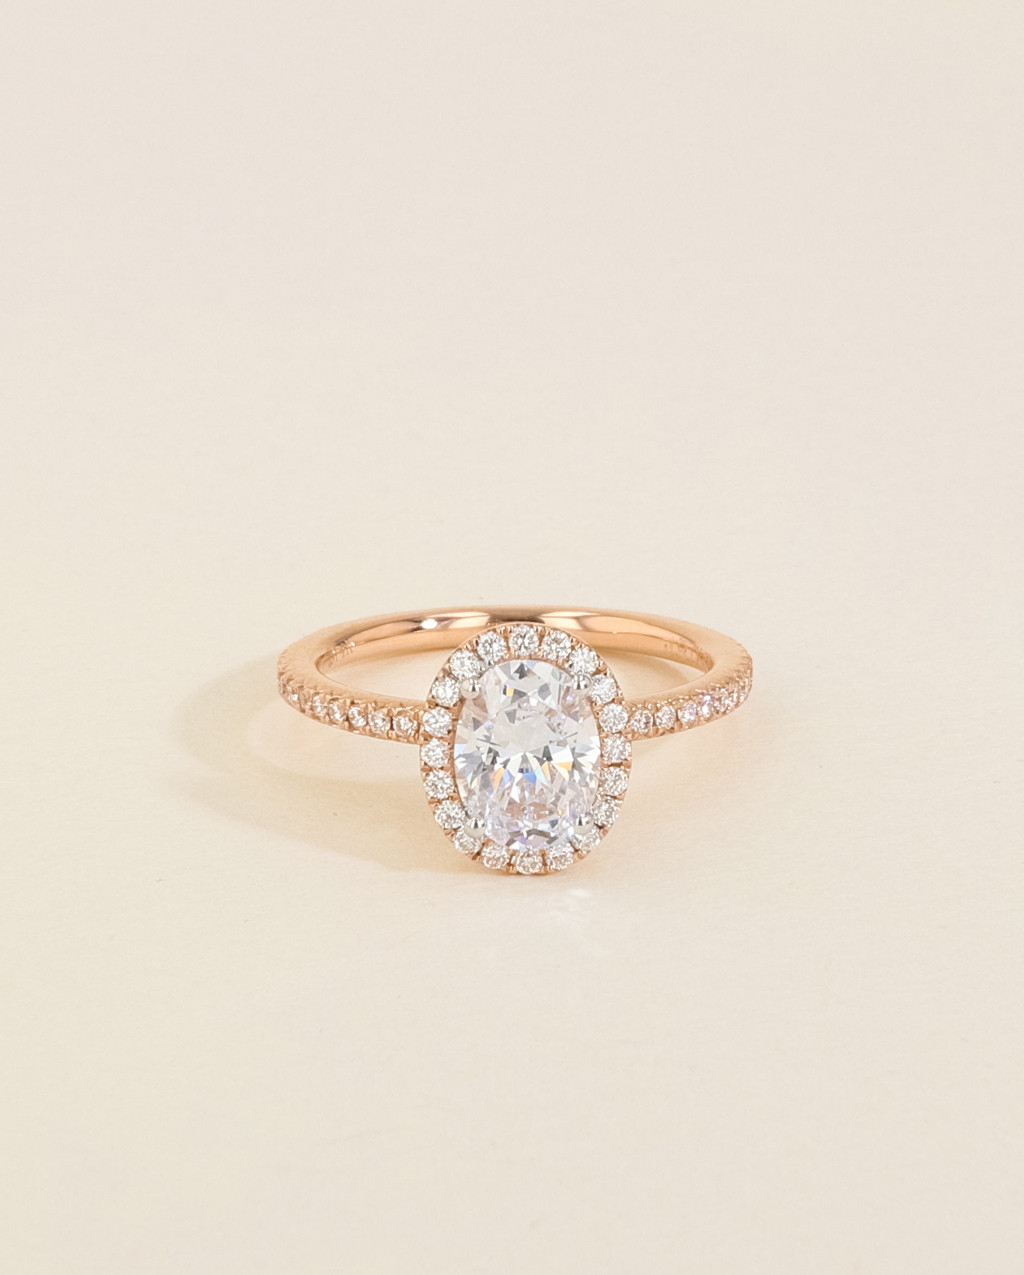 Halo Oval Engagement Ring With Diamond Pave Band In Rose Gold